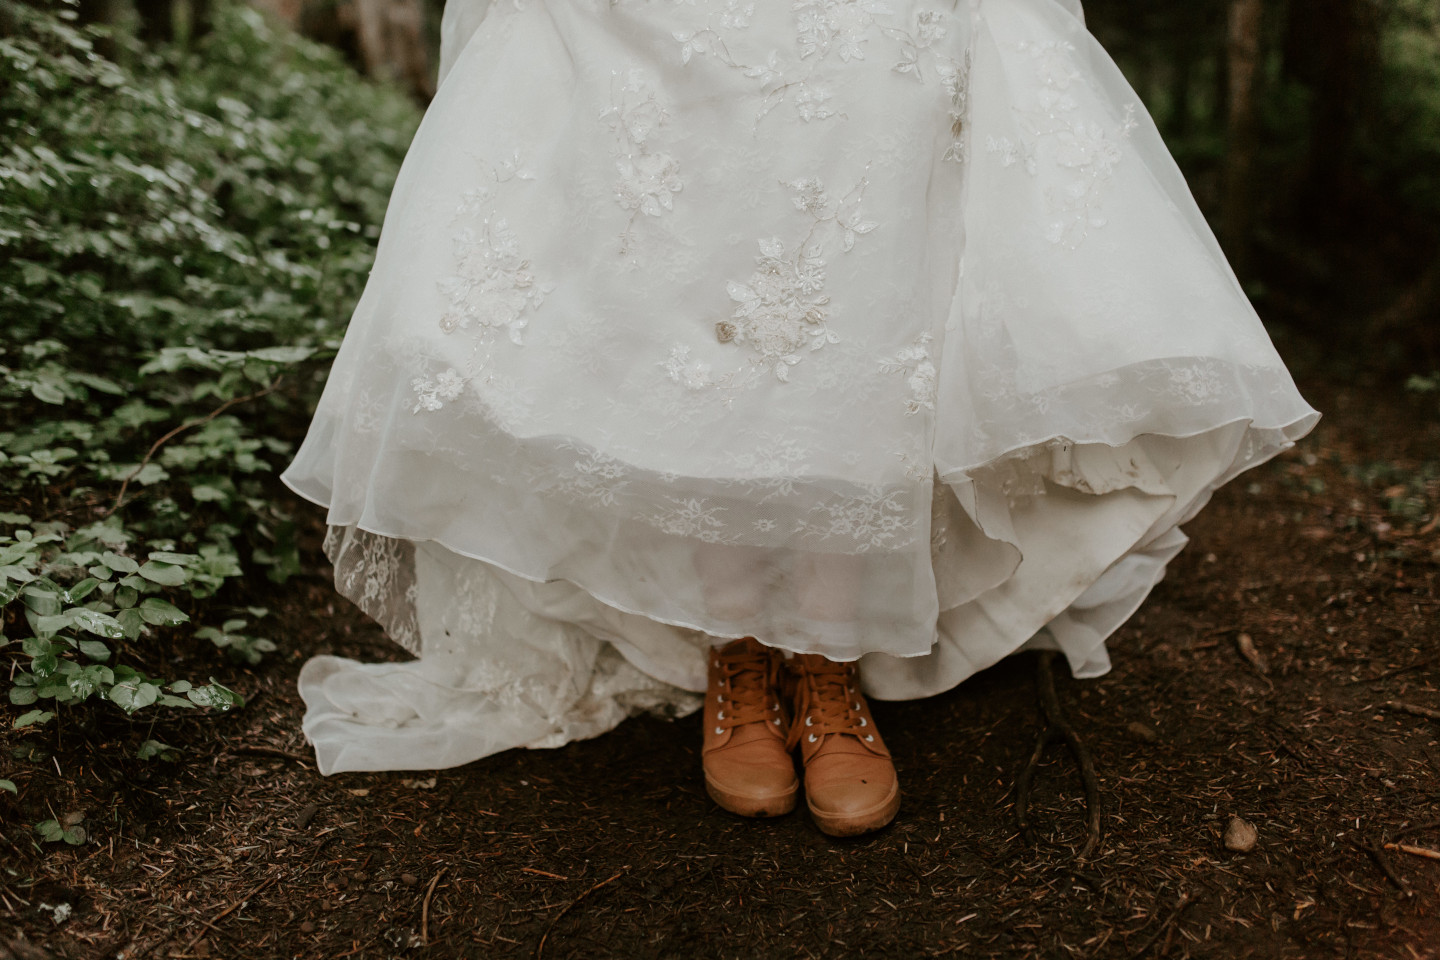 Moira shows off her adventure shoes. Adventure elopement wedding shoot by Sienna Plus Josh.